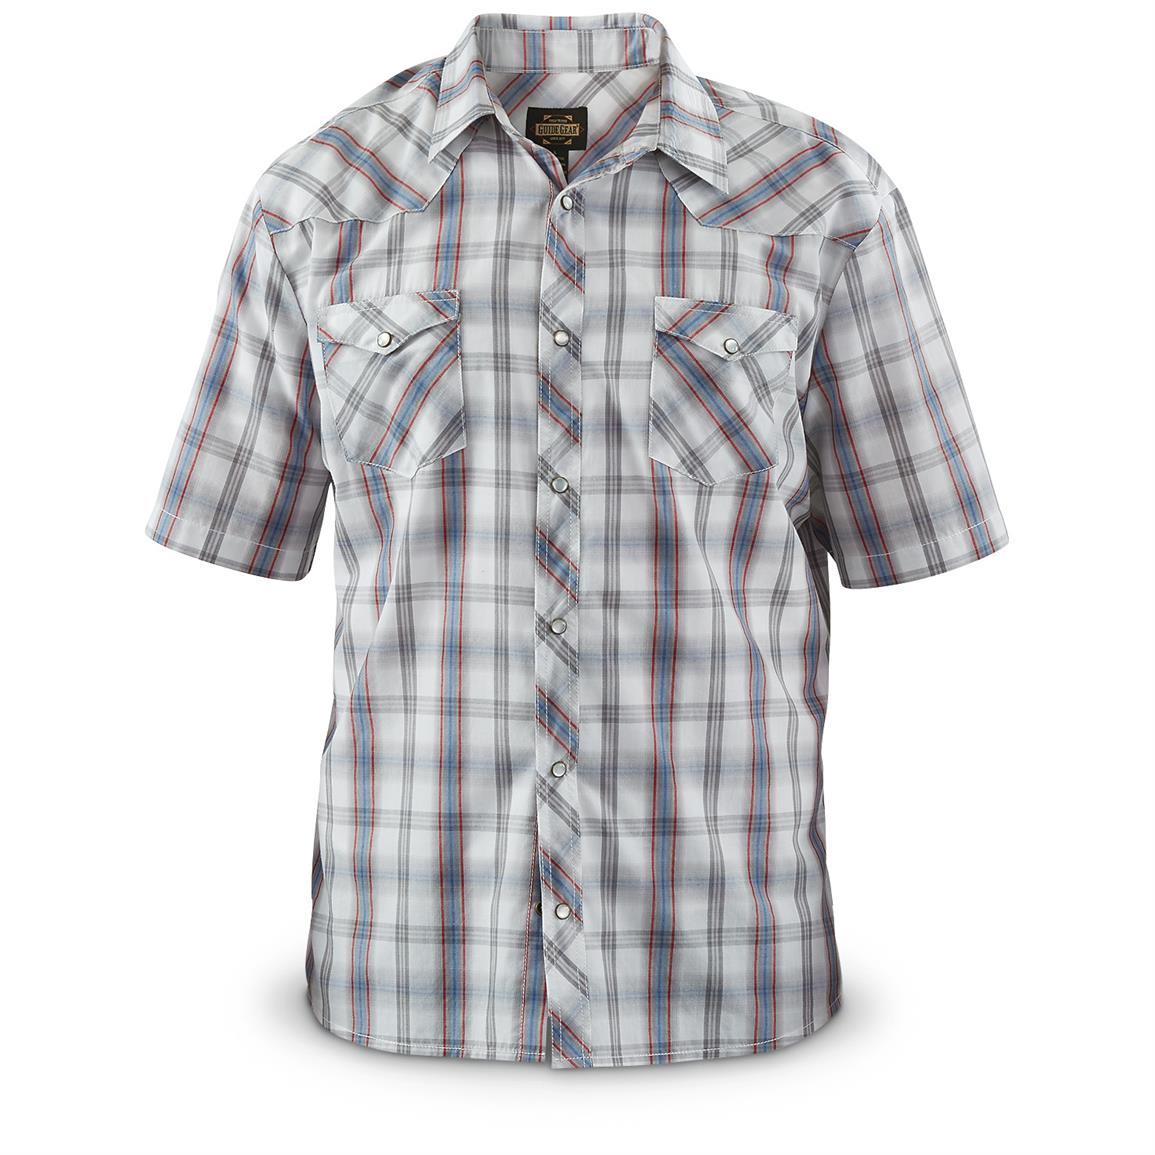 Guide Gear Men's Amarillo Western Short-Sleeve Shirt, White Plaid